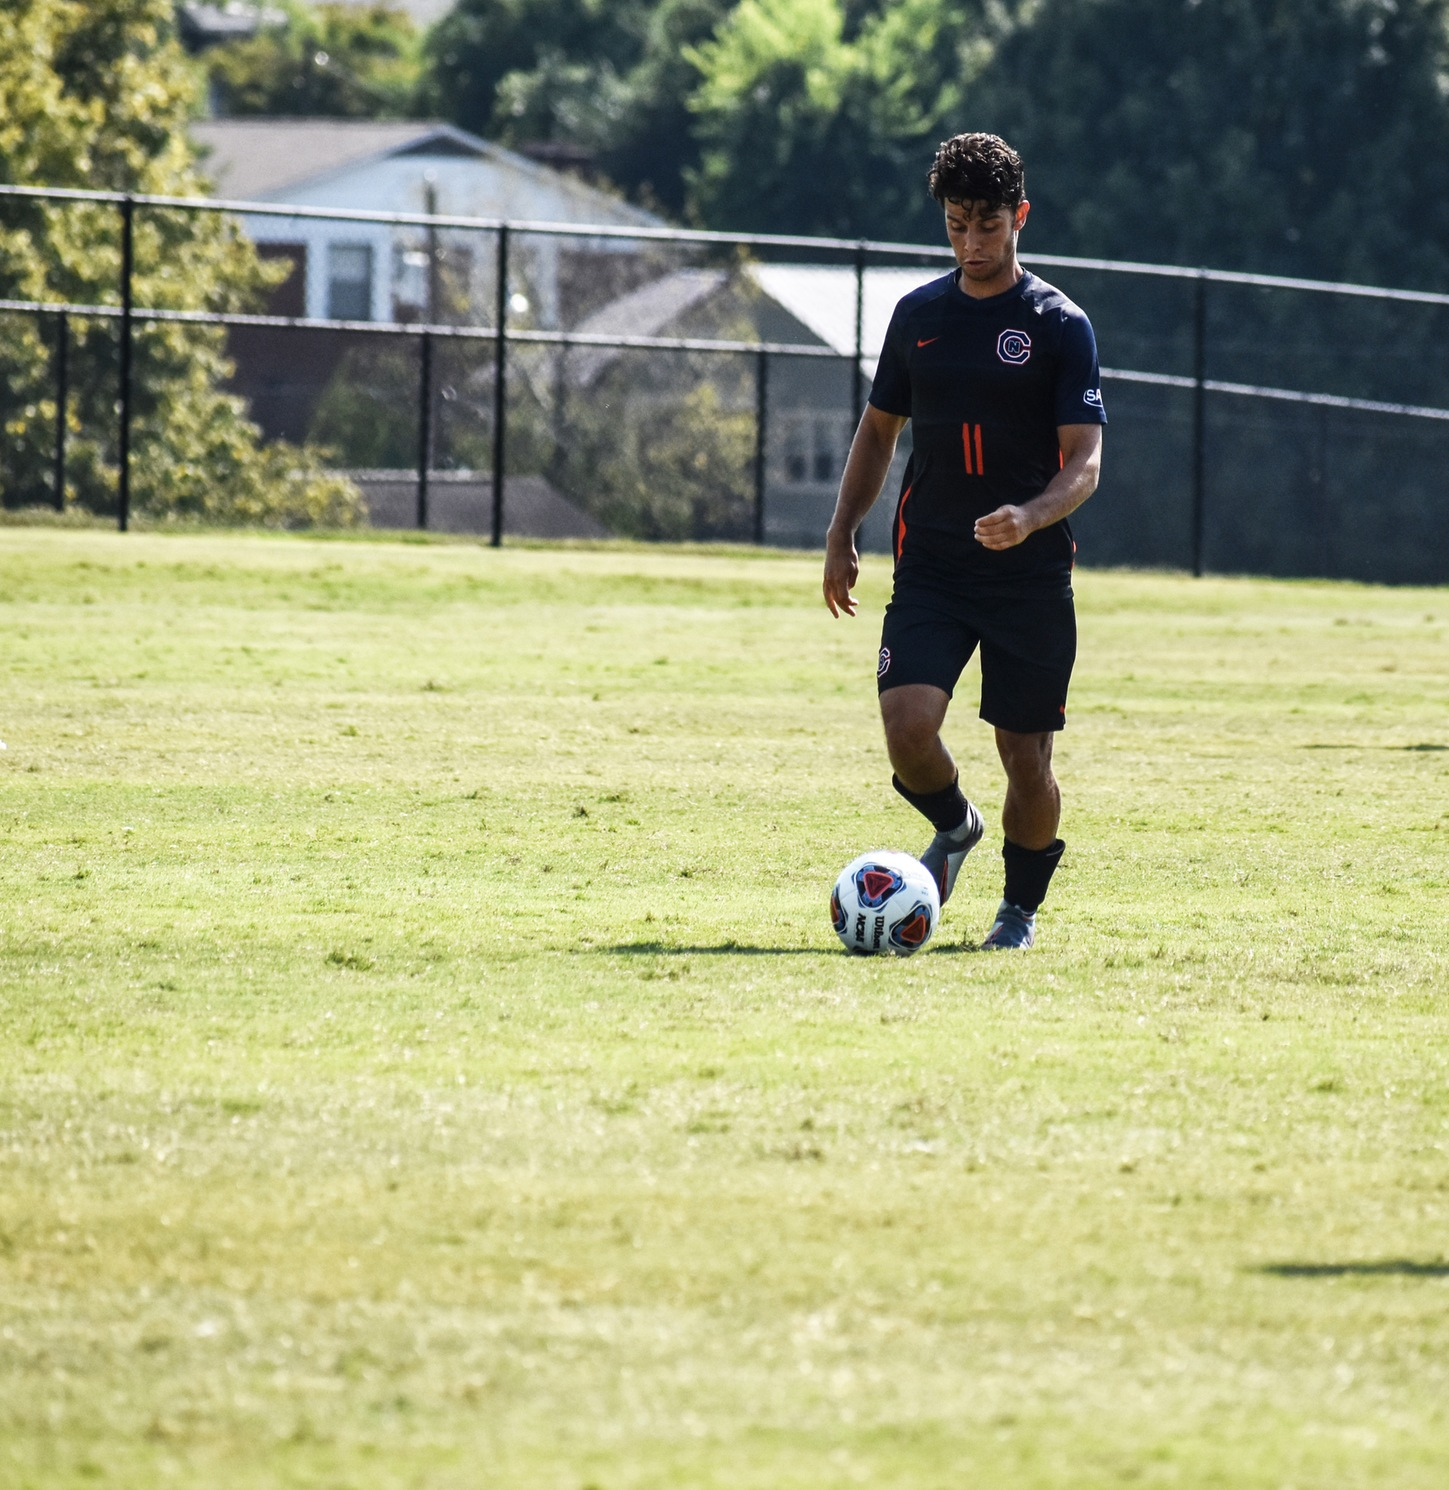 Silva's double-overtime penalty kick helps No. 13 Eagles hold off Catawba